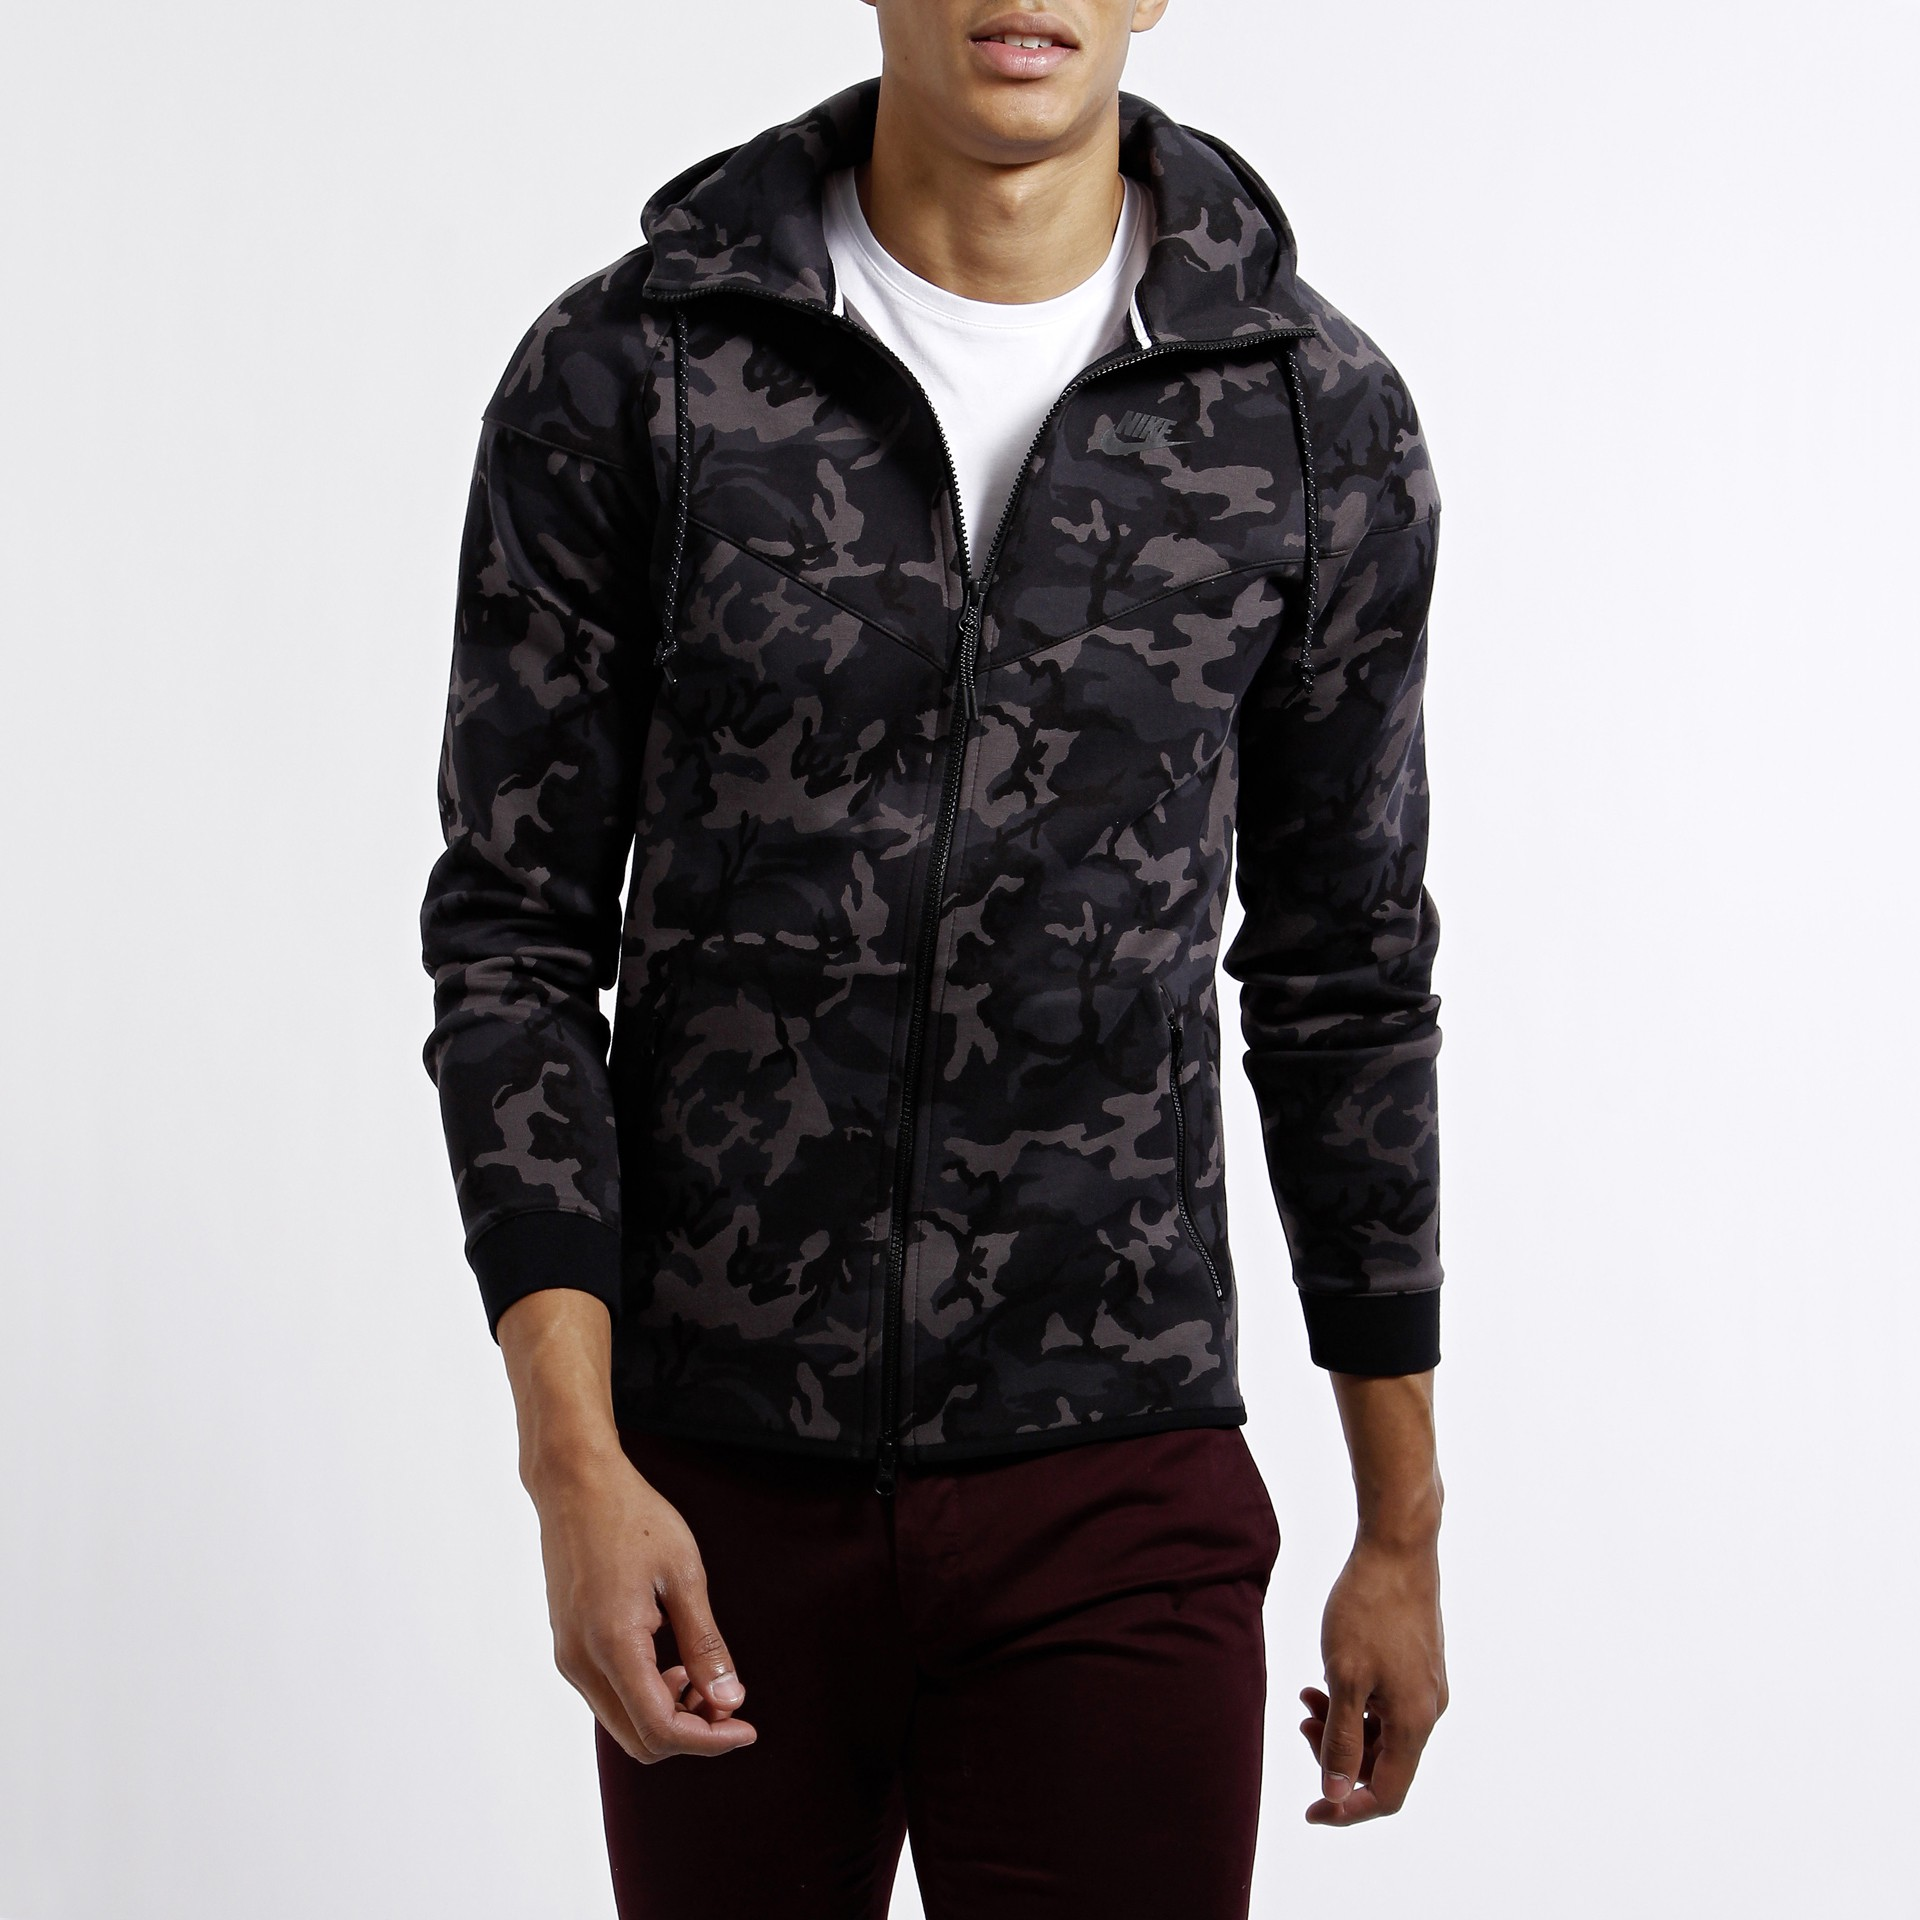 veste nike camouflage homme chapka doudoune pull. Black Bedroom Furniture Sets. Home Design Ideas